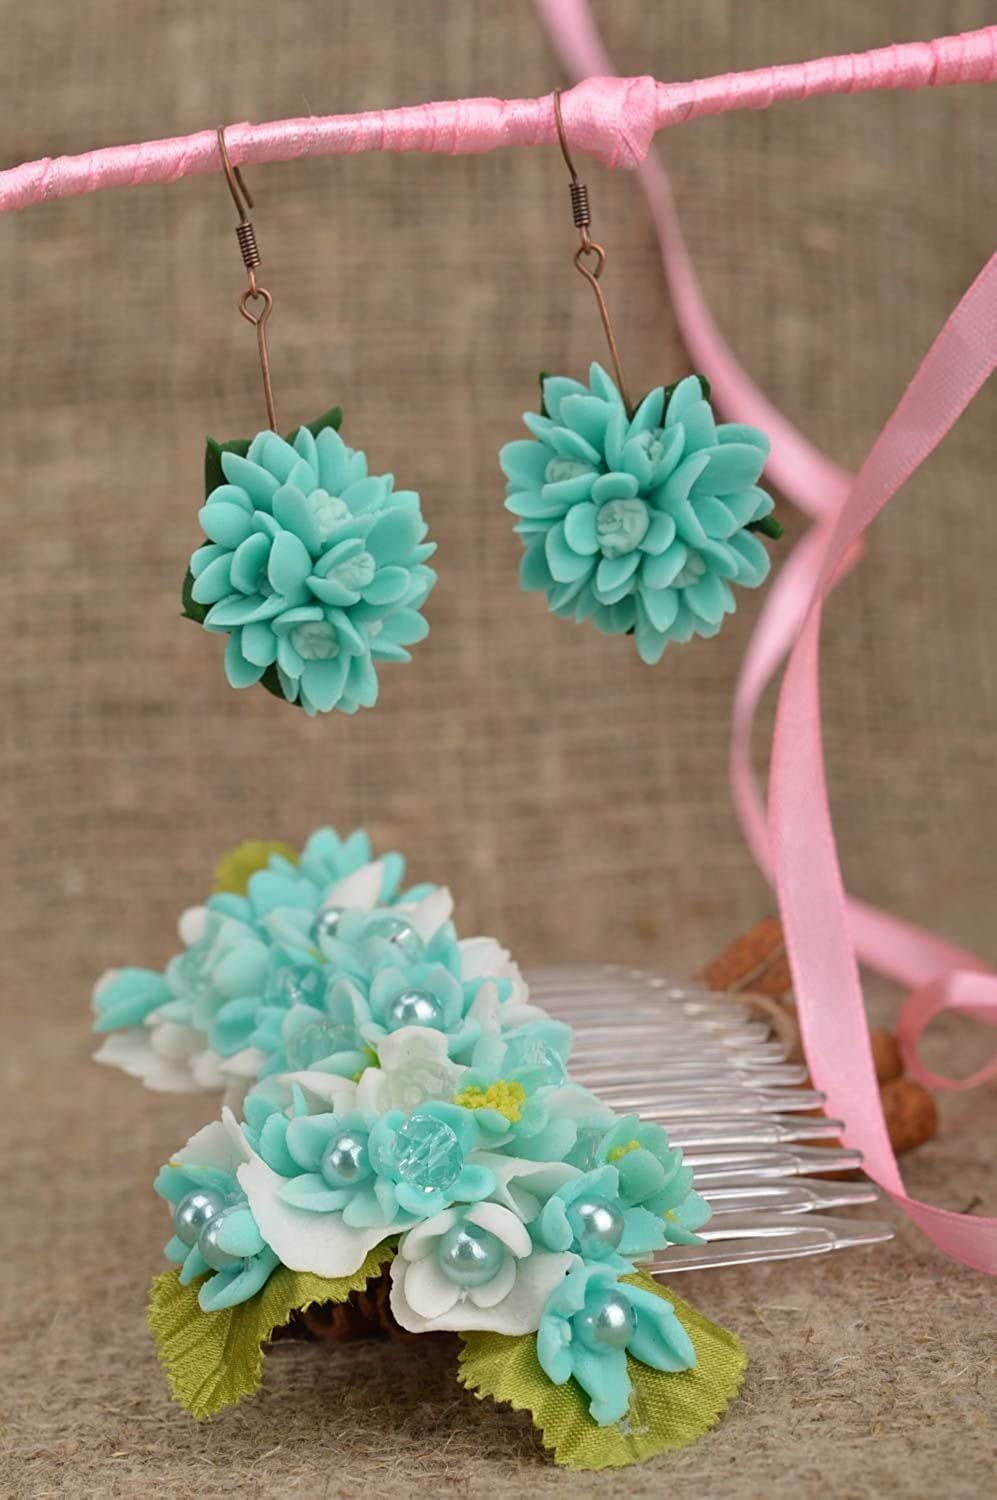 Set of Handmade Polymer Clay Floral Accessories 2 Items Earrings and Hair Comb